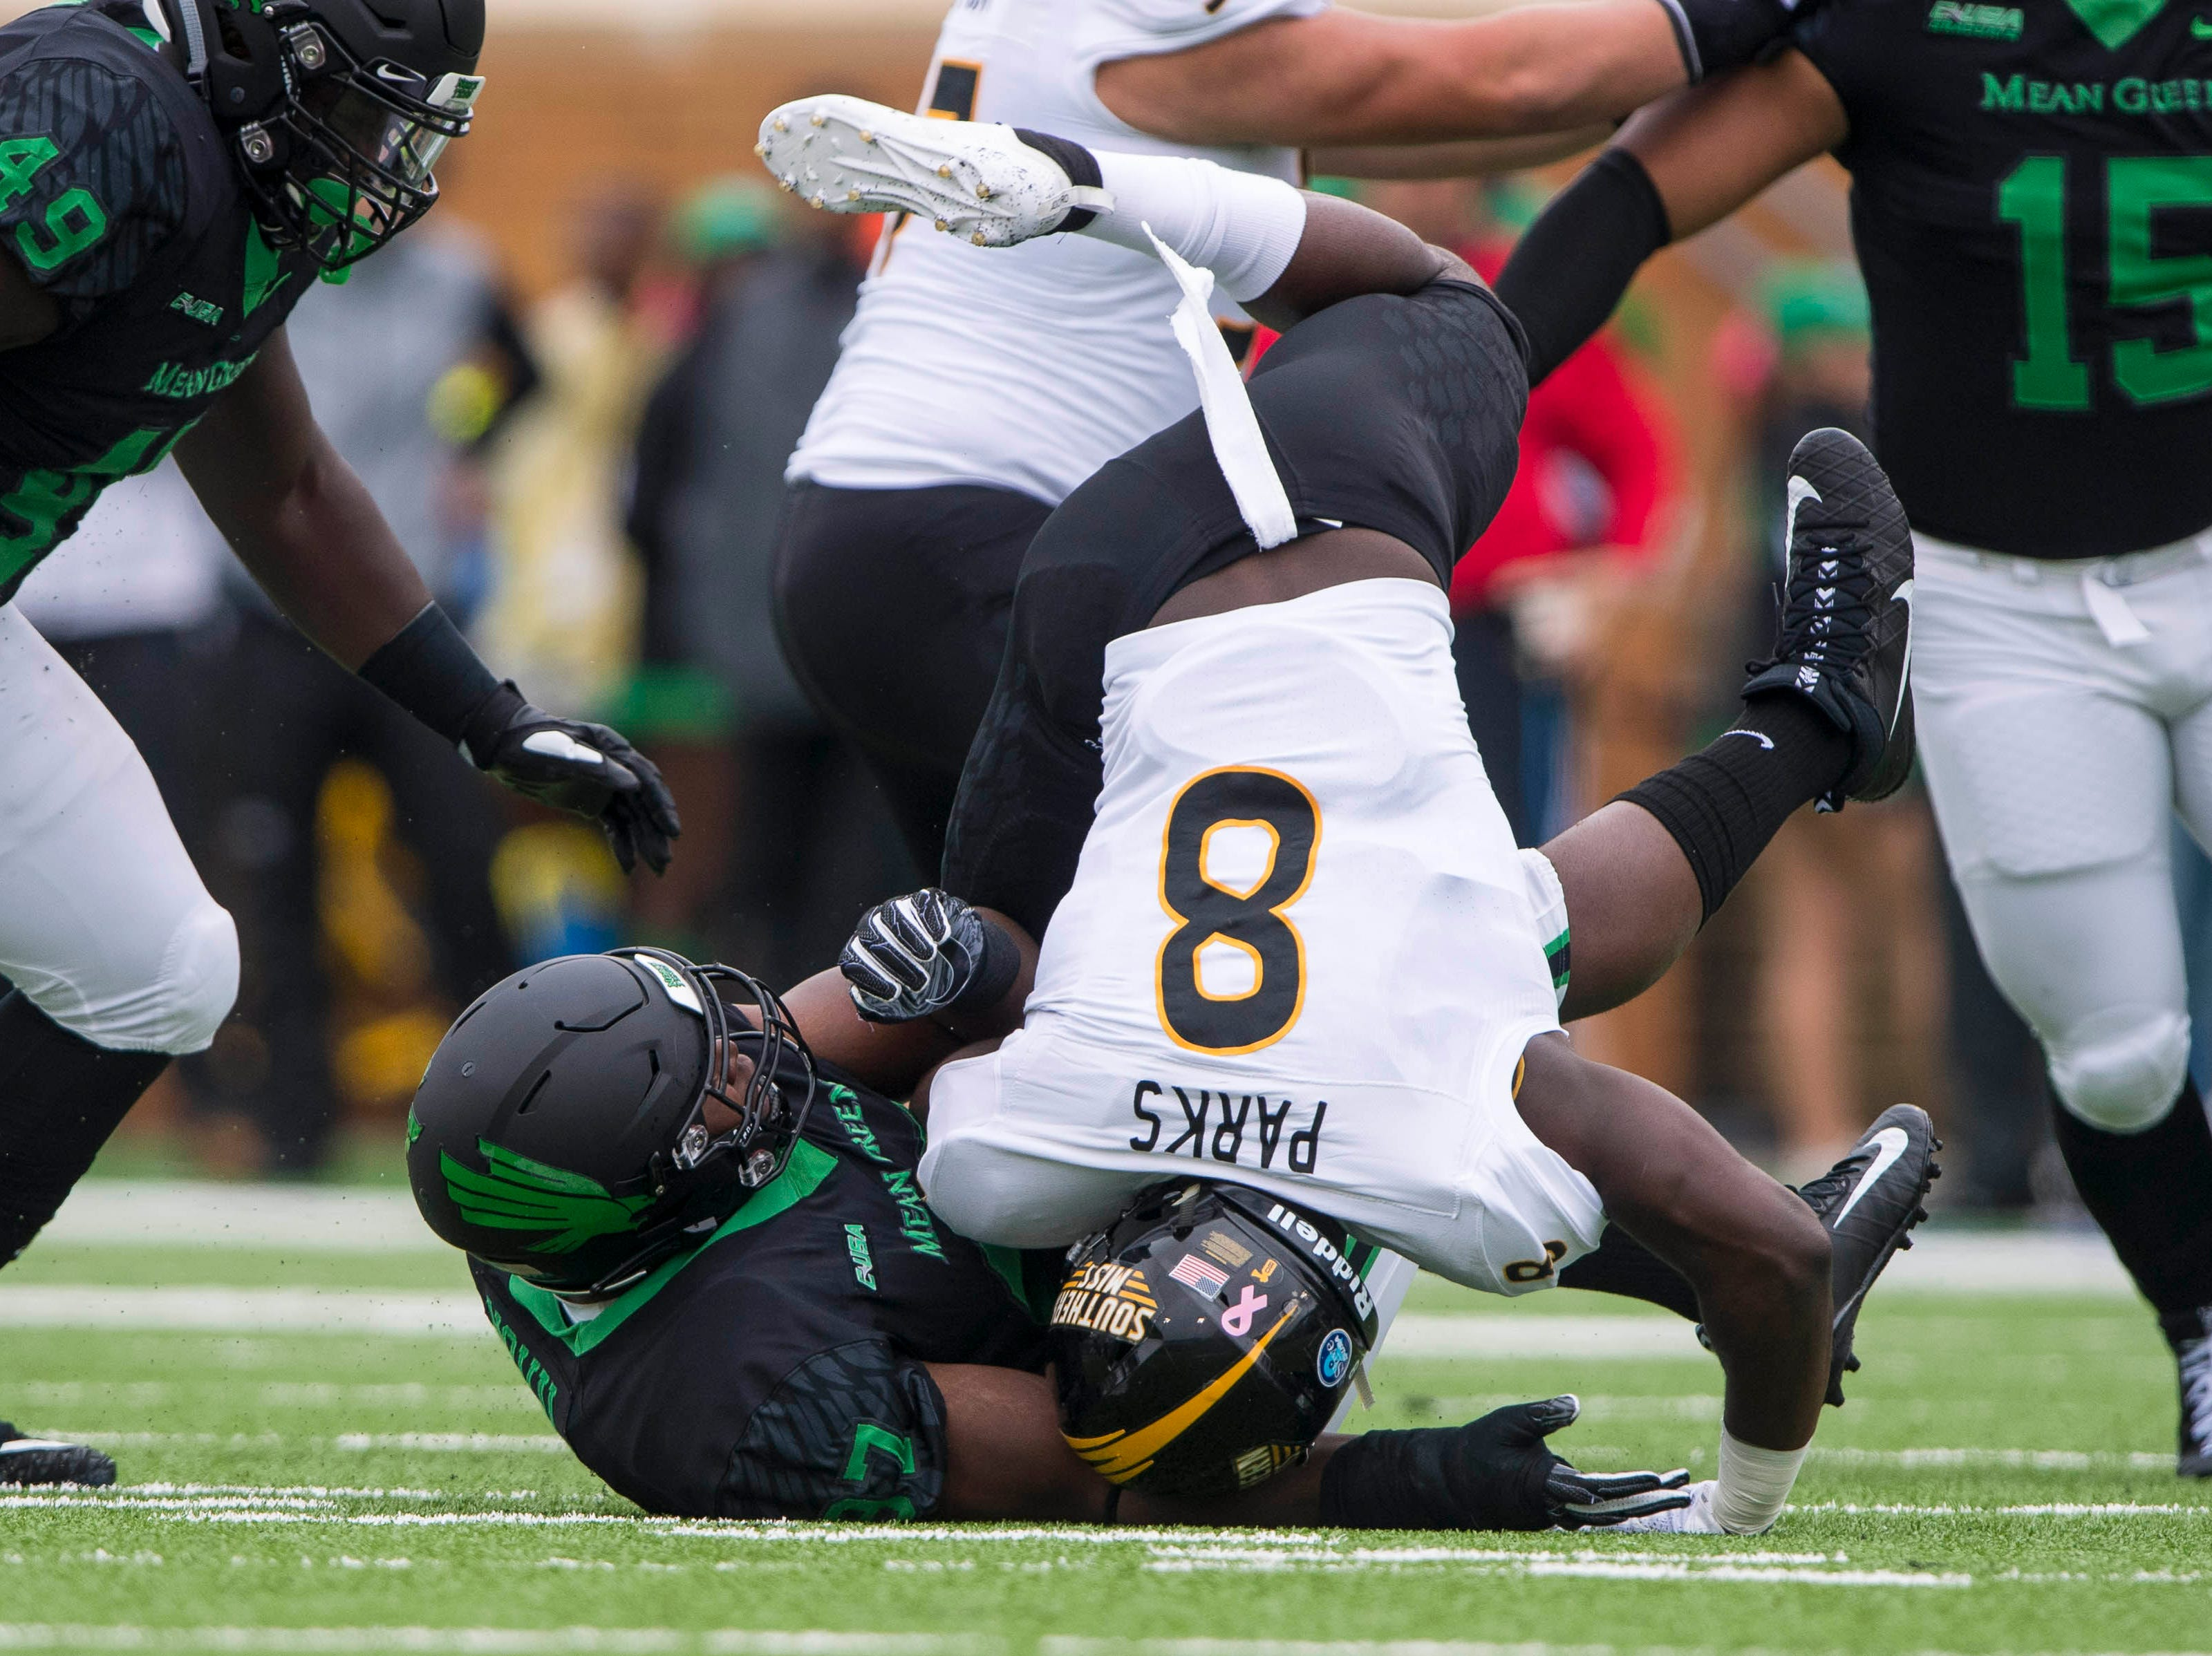 Oct 13, 2018; Denton, TX, USA; North Texas Mean Green defensive lineman Dion Novil (97) tackles Southern Miss Golden Eagles running back Tez Parks (8) during the first half at Apogee Stadium.